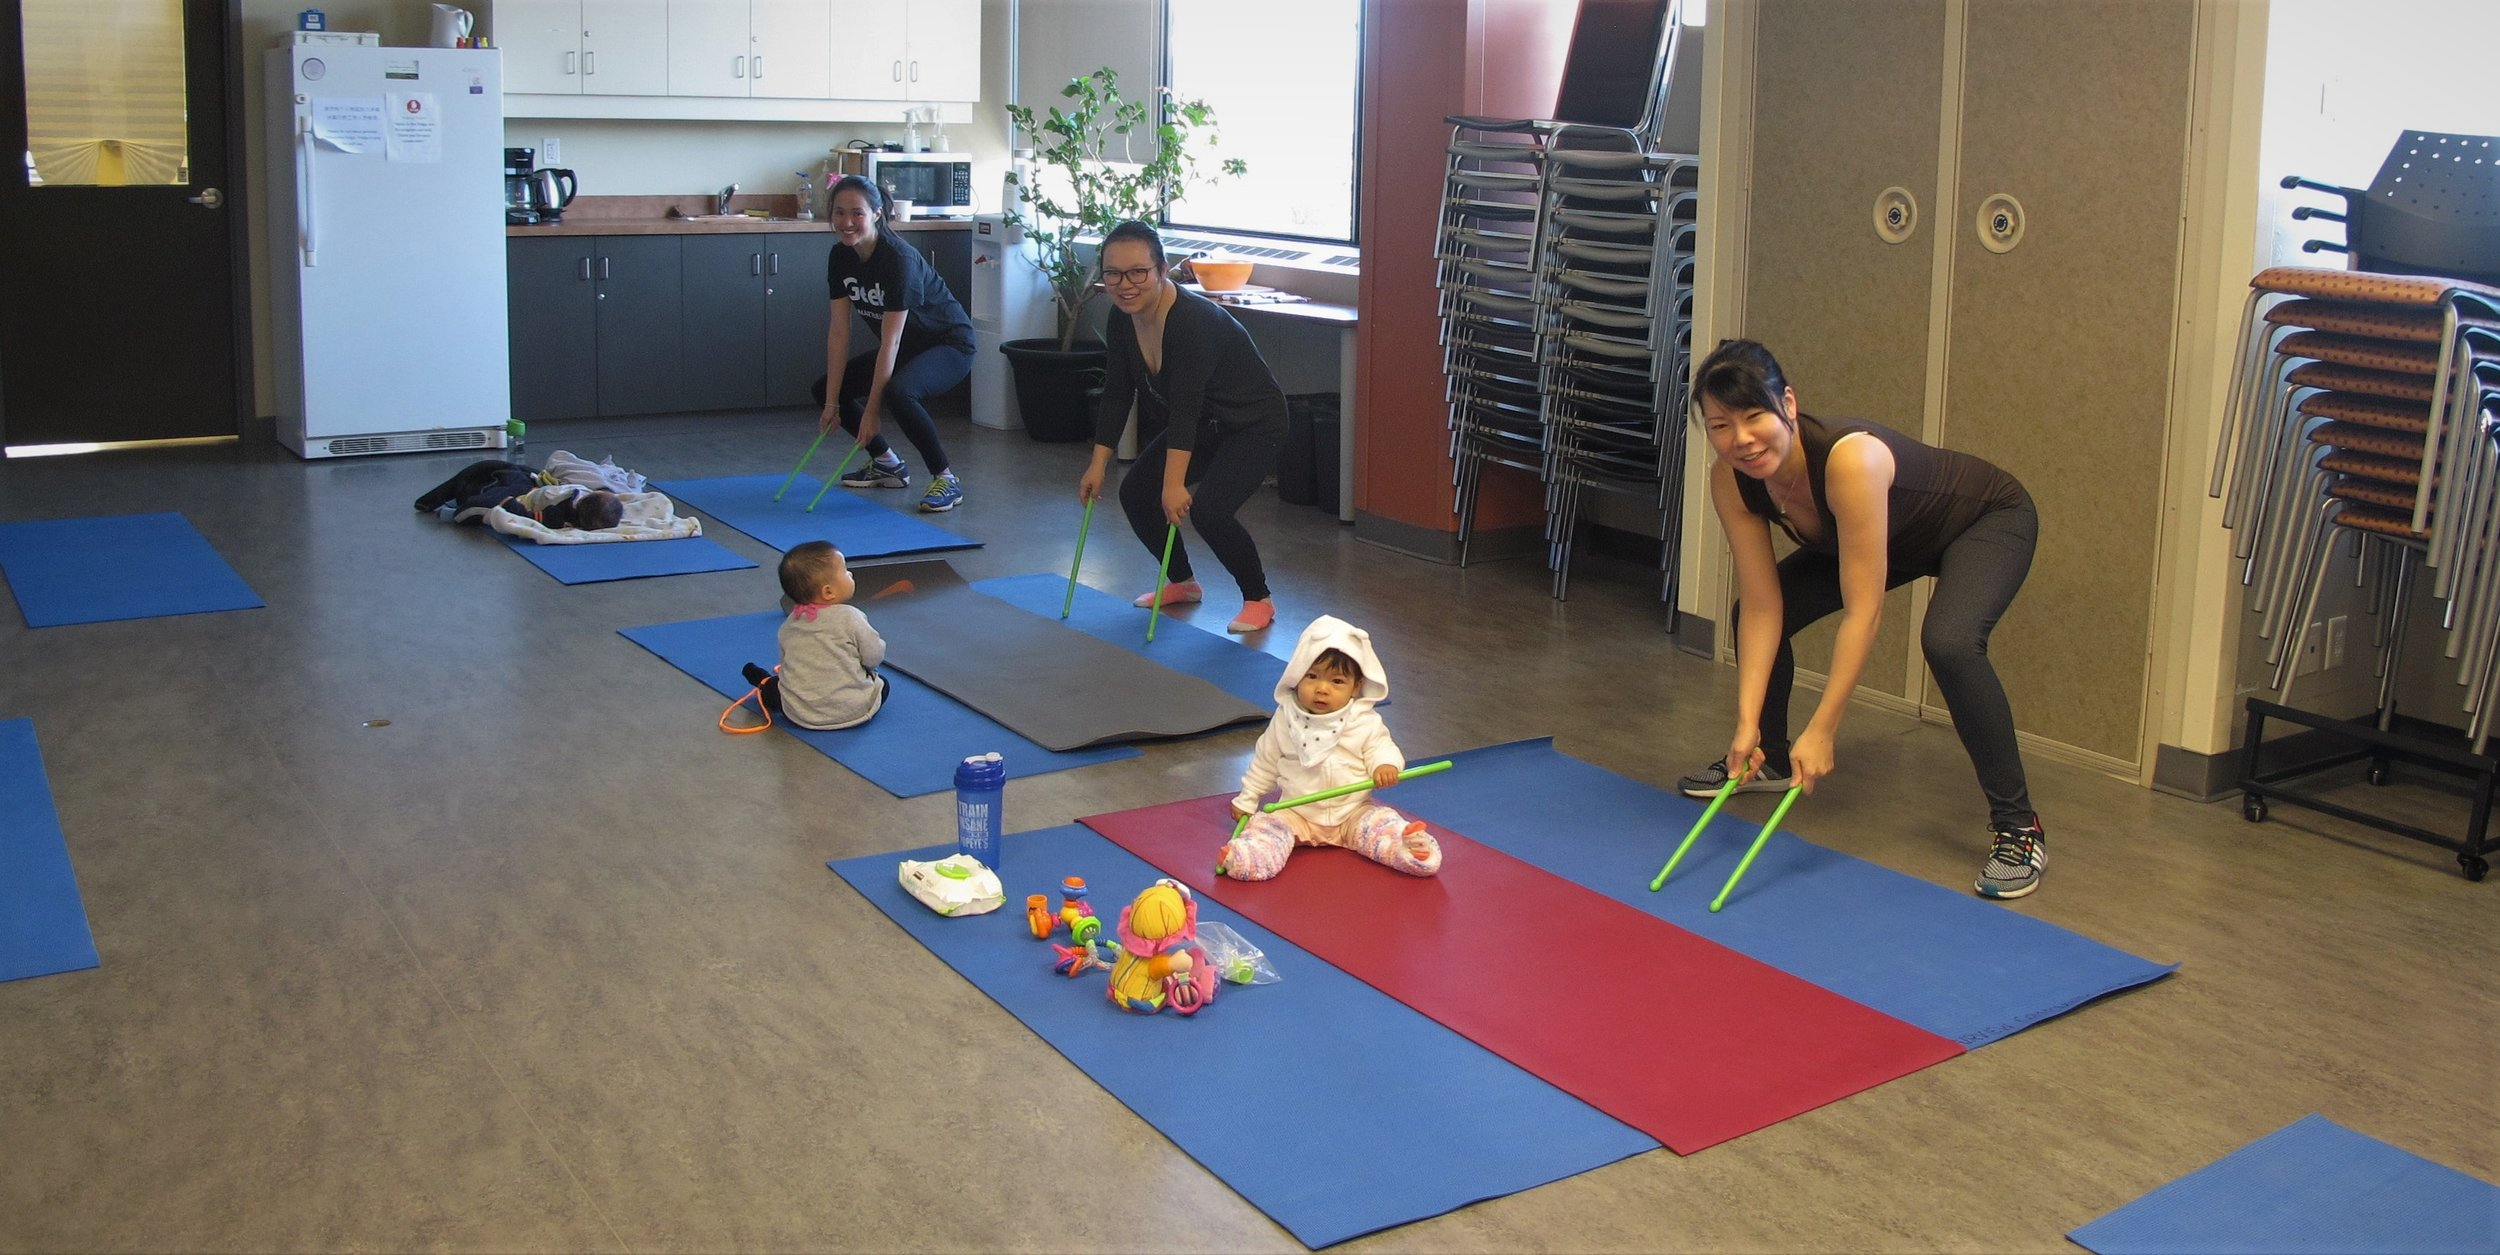 Having fun with the Women at the Mom and Baby Pound Fitness Class